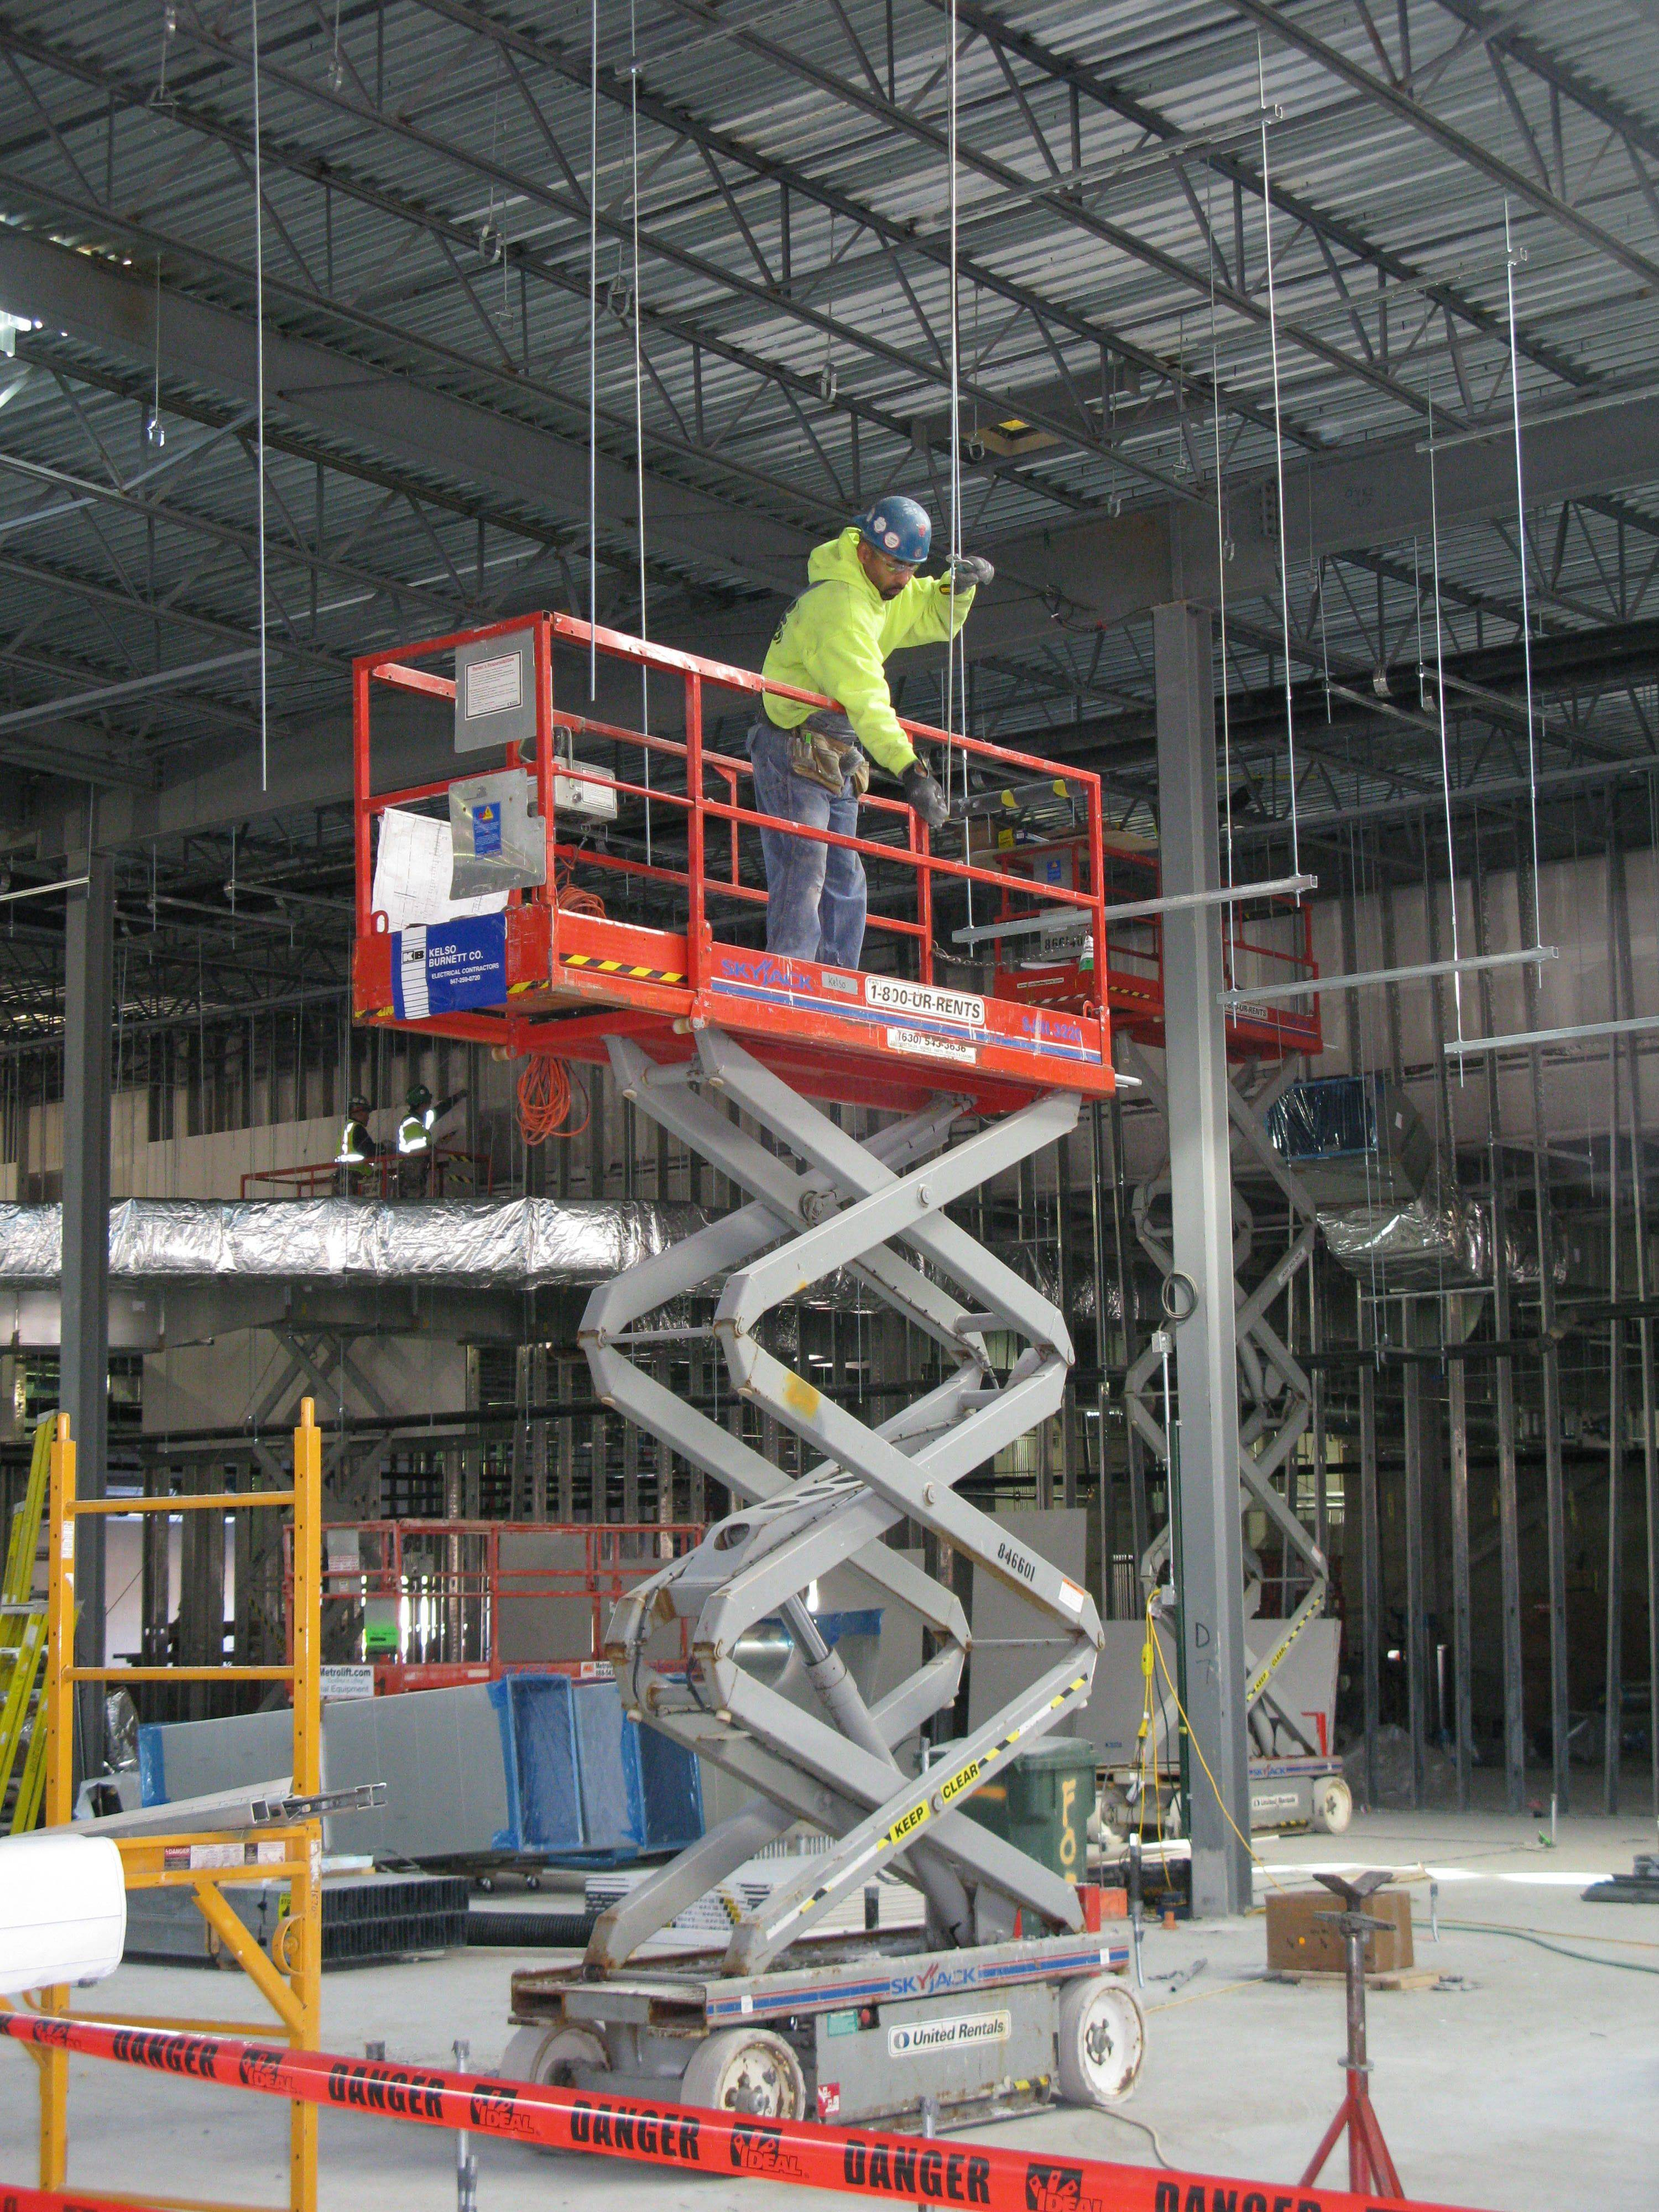 A construction worker installs hangers for overhead ducts Thursday at the Des Plaines casino site.